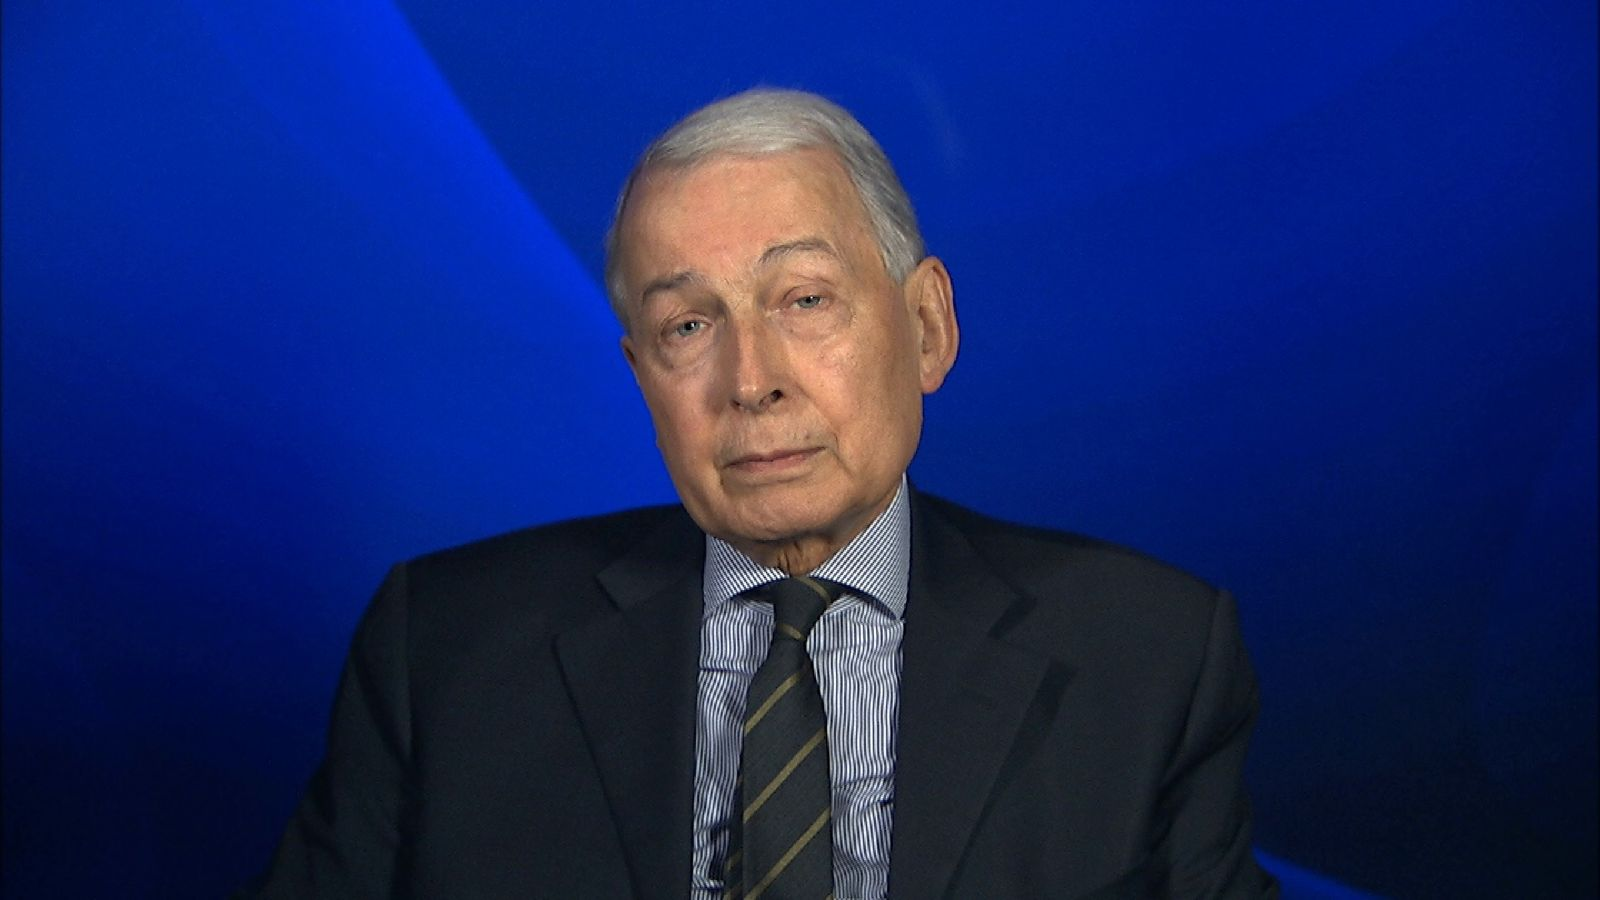 Frank Field chairs the Work and Pensions Select Committee